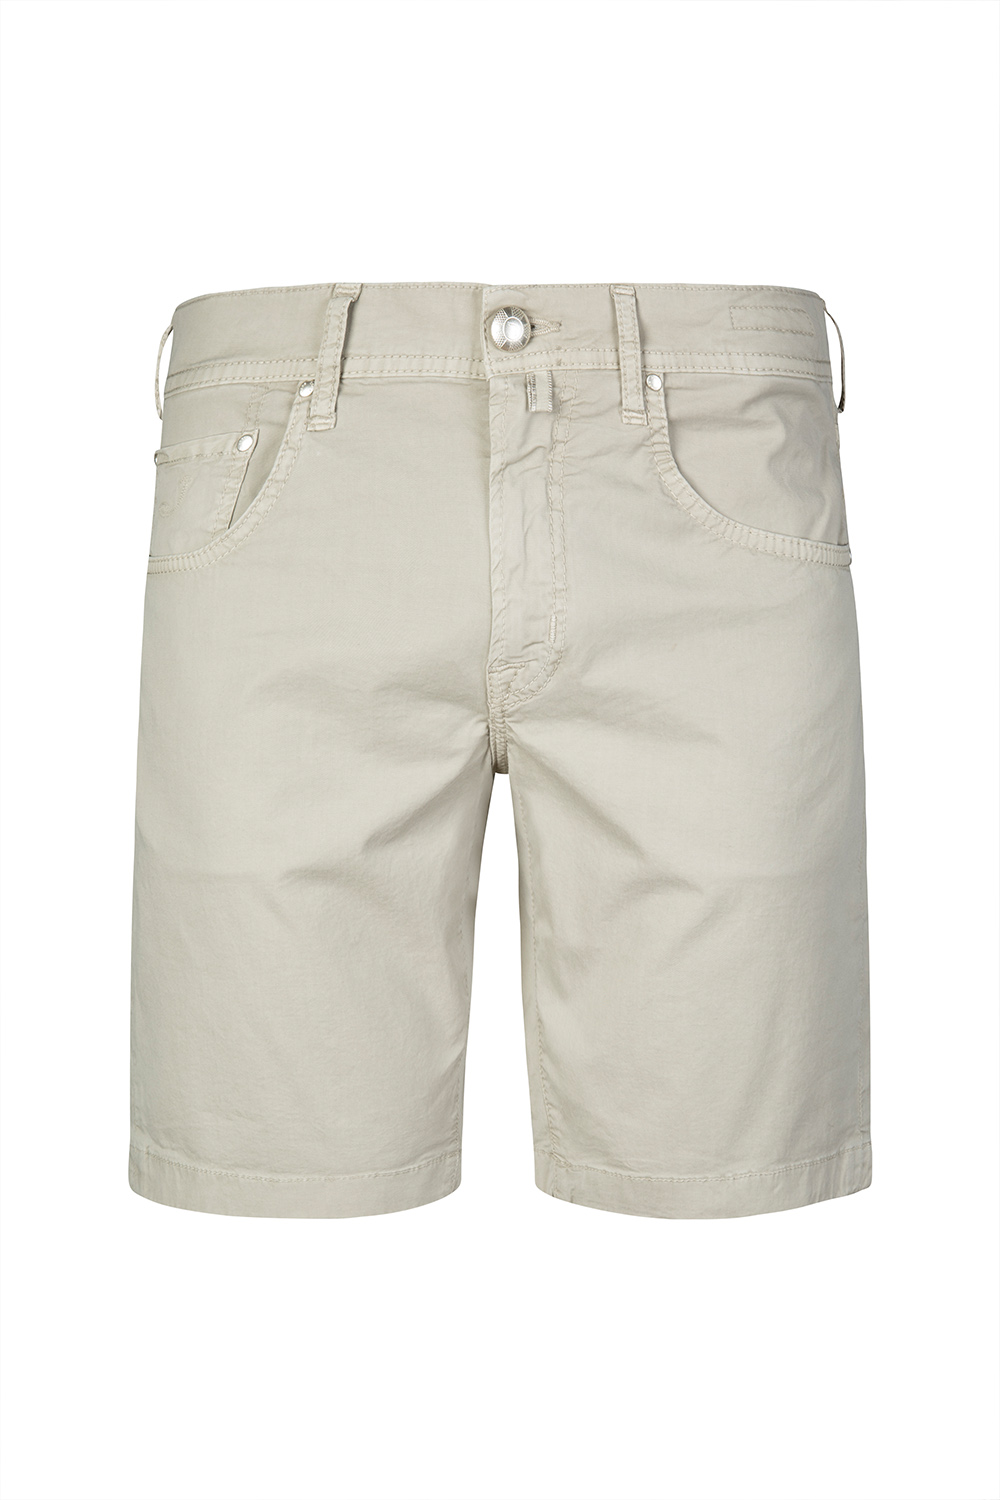 79b14d9de7 Jacob Cohën Men's Cotton Bermuda Shorts Light Grey | Linea Fashion